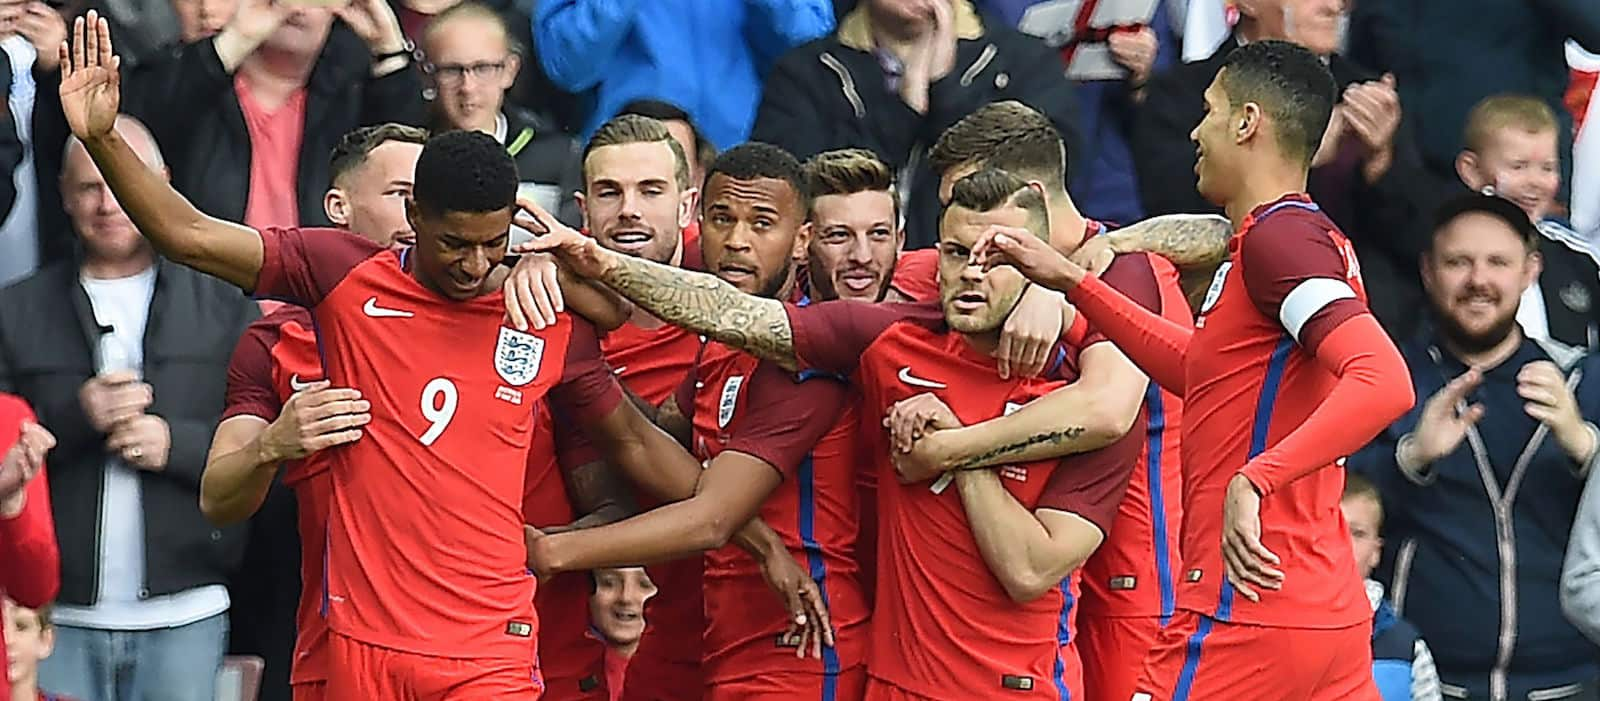 Wales vs England: Can Manchester United's trio tear it up?